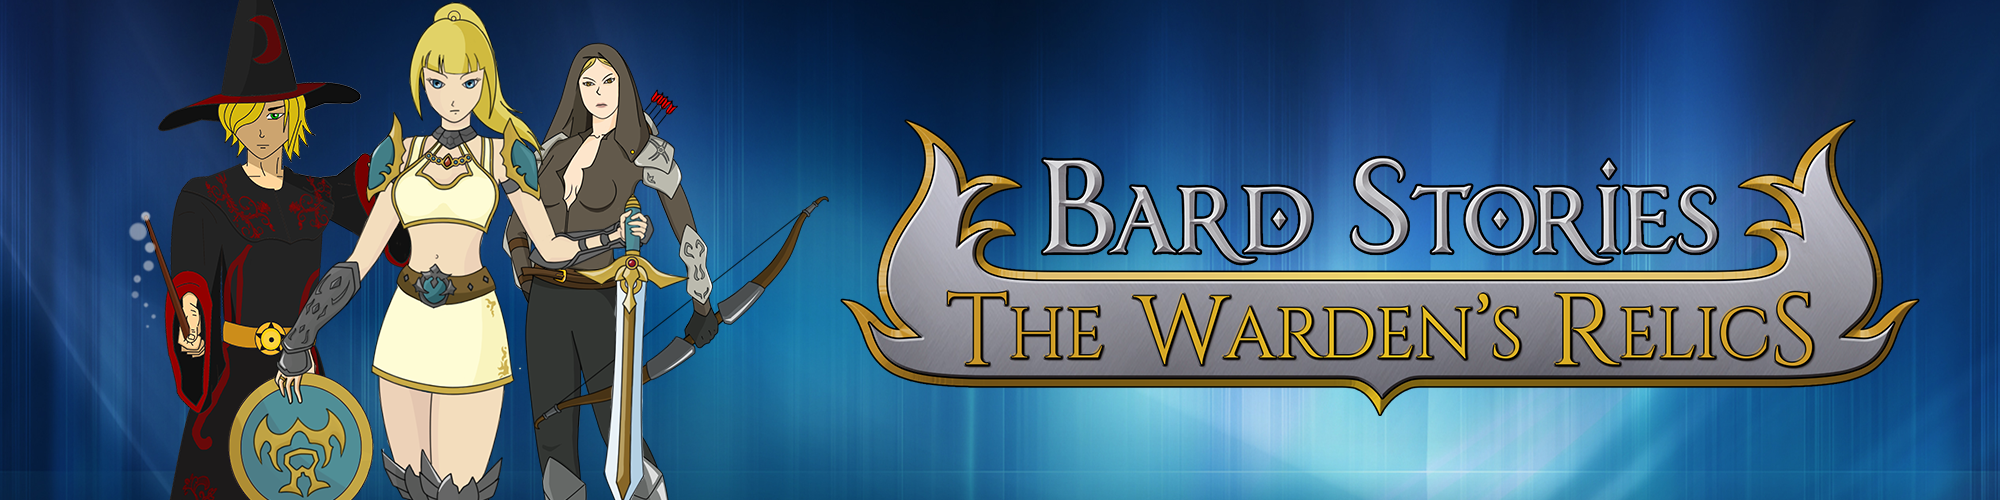 Bard Stories - The Warden's Relics